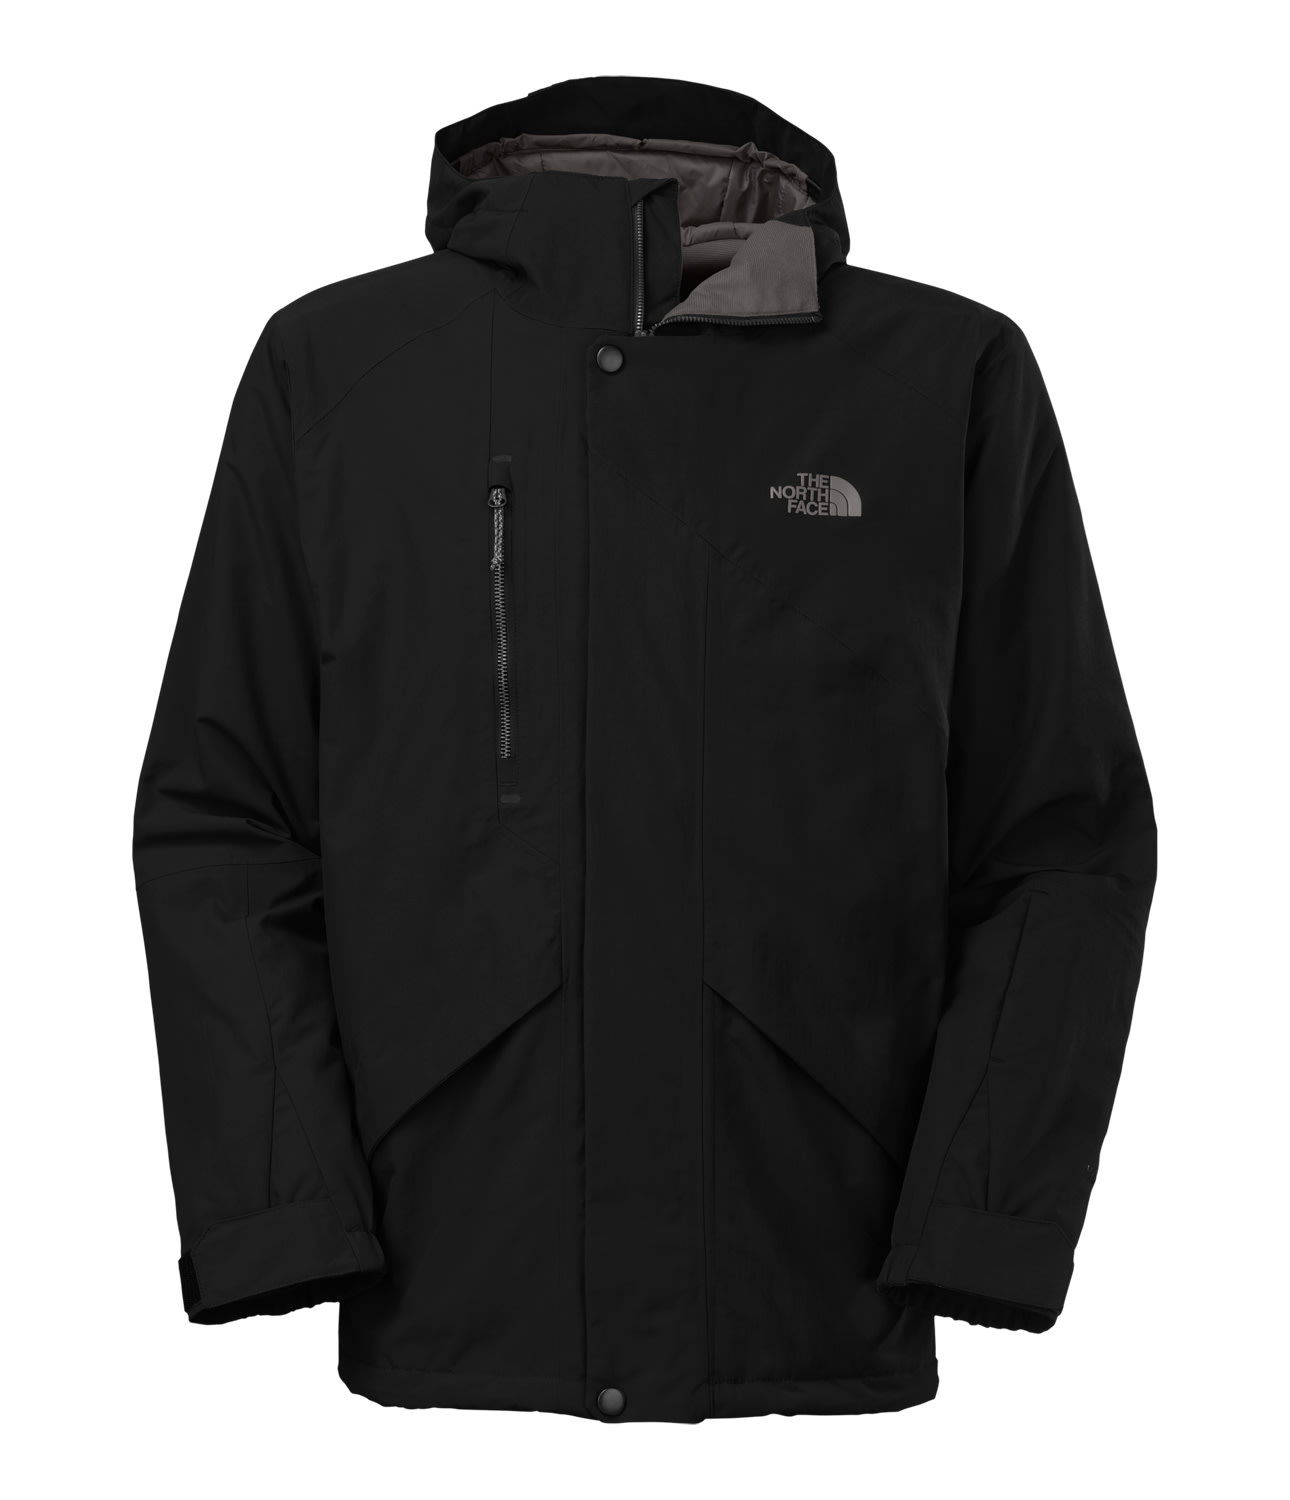 The North Face Dubs Insulated Ski Jacket - thumbnail 1